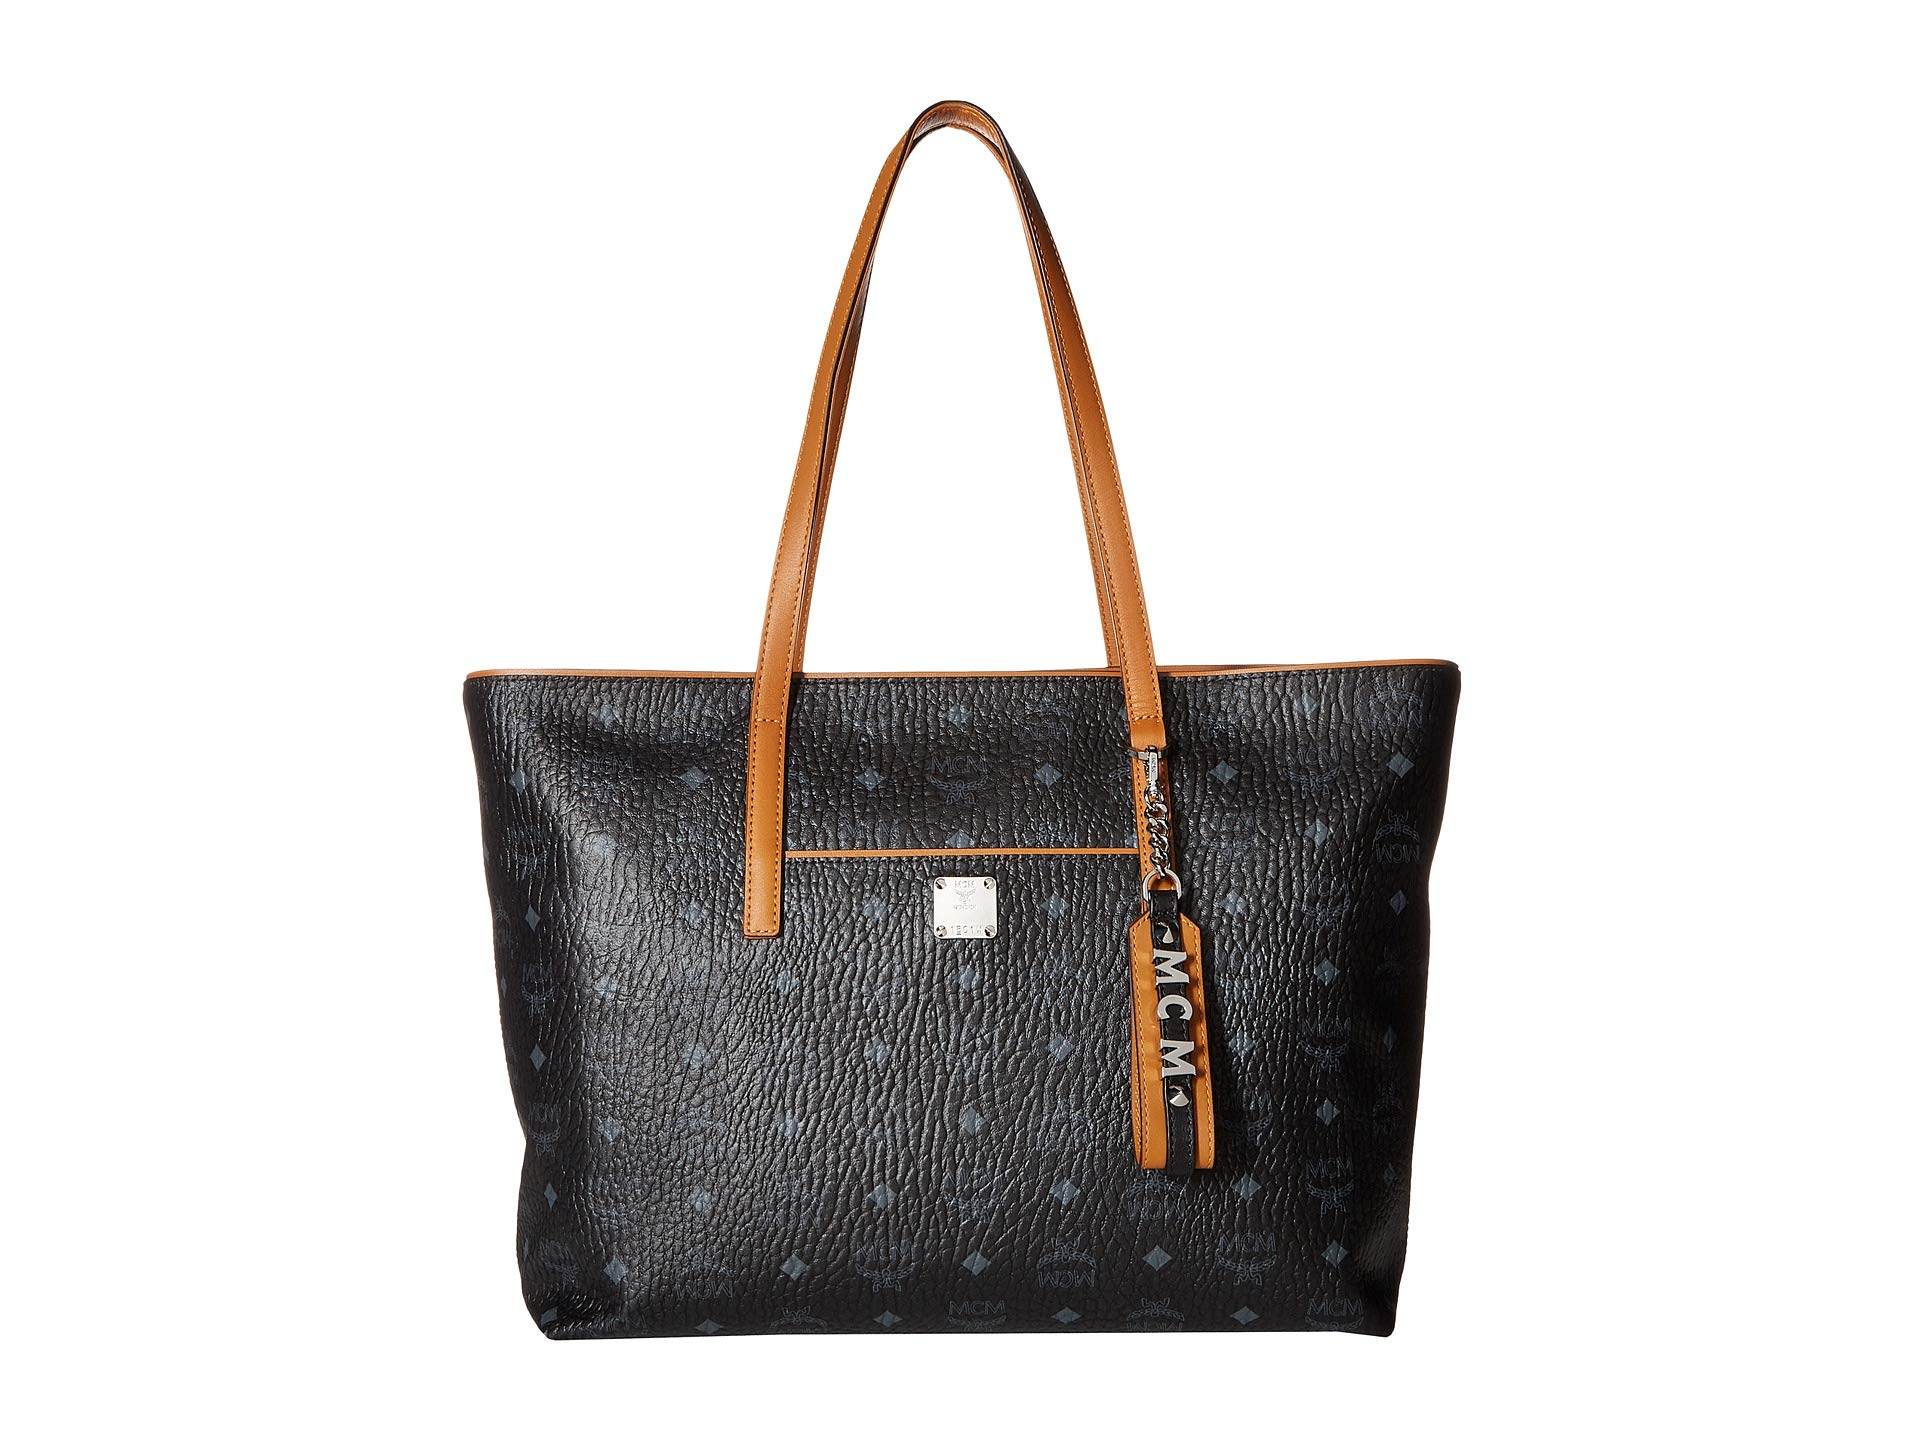 Mcm Mcm Black Shopper Anya Medium Anya PBBqa4F